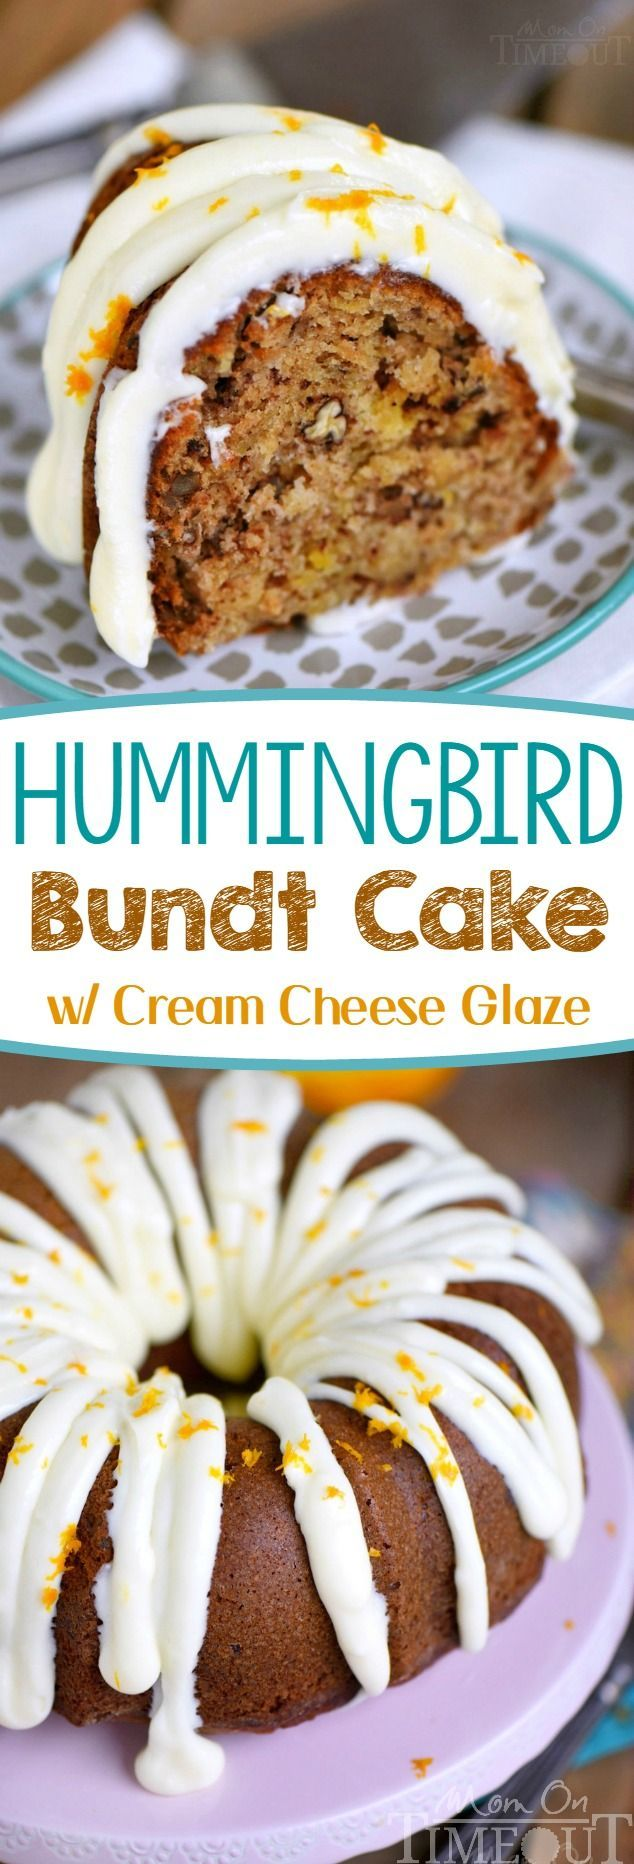 Hummingbird Bundt Cake with Cream Cheese Glaze will be the star of the show! This delightfully moist cake is made with bananas, pineapple, pecans and spiced with cinnamon, cloves and nutmeg - every bite of this easy cake is pure bliss! | Mom On Timeout